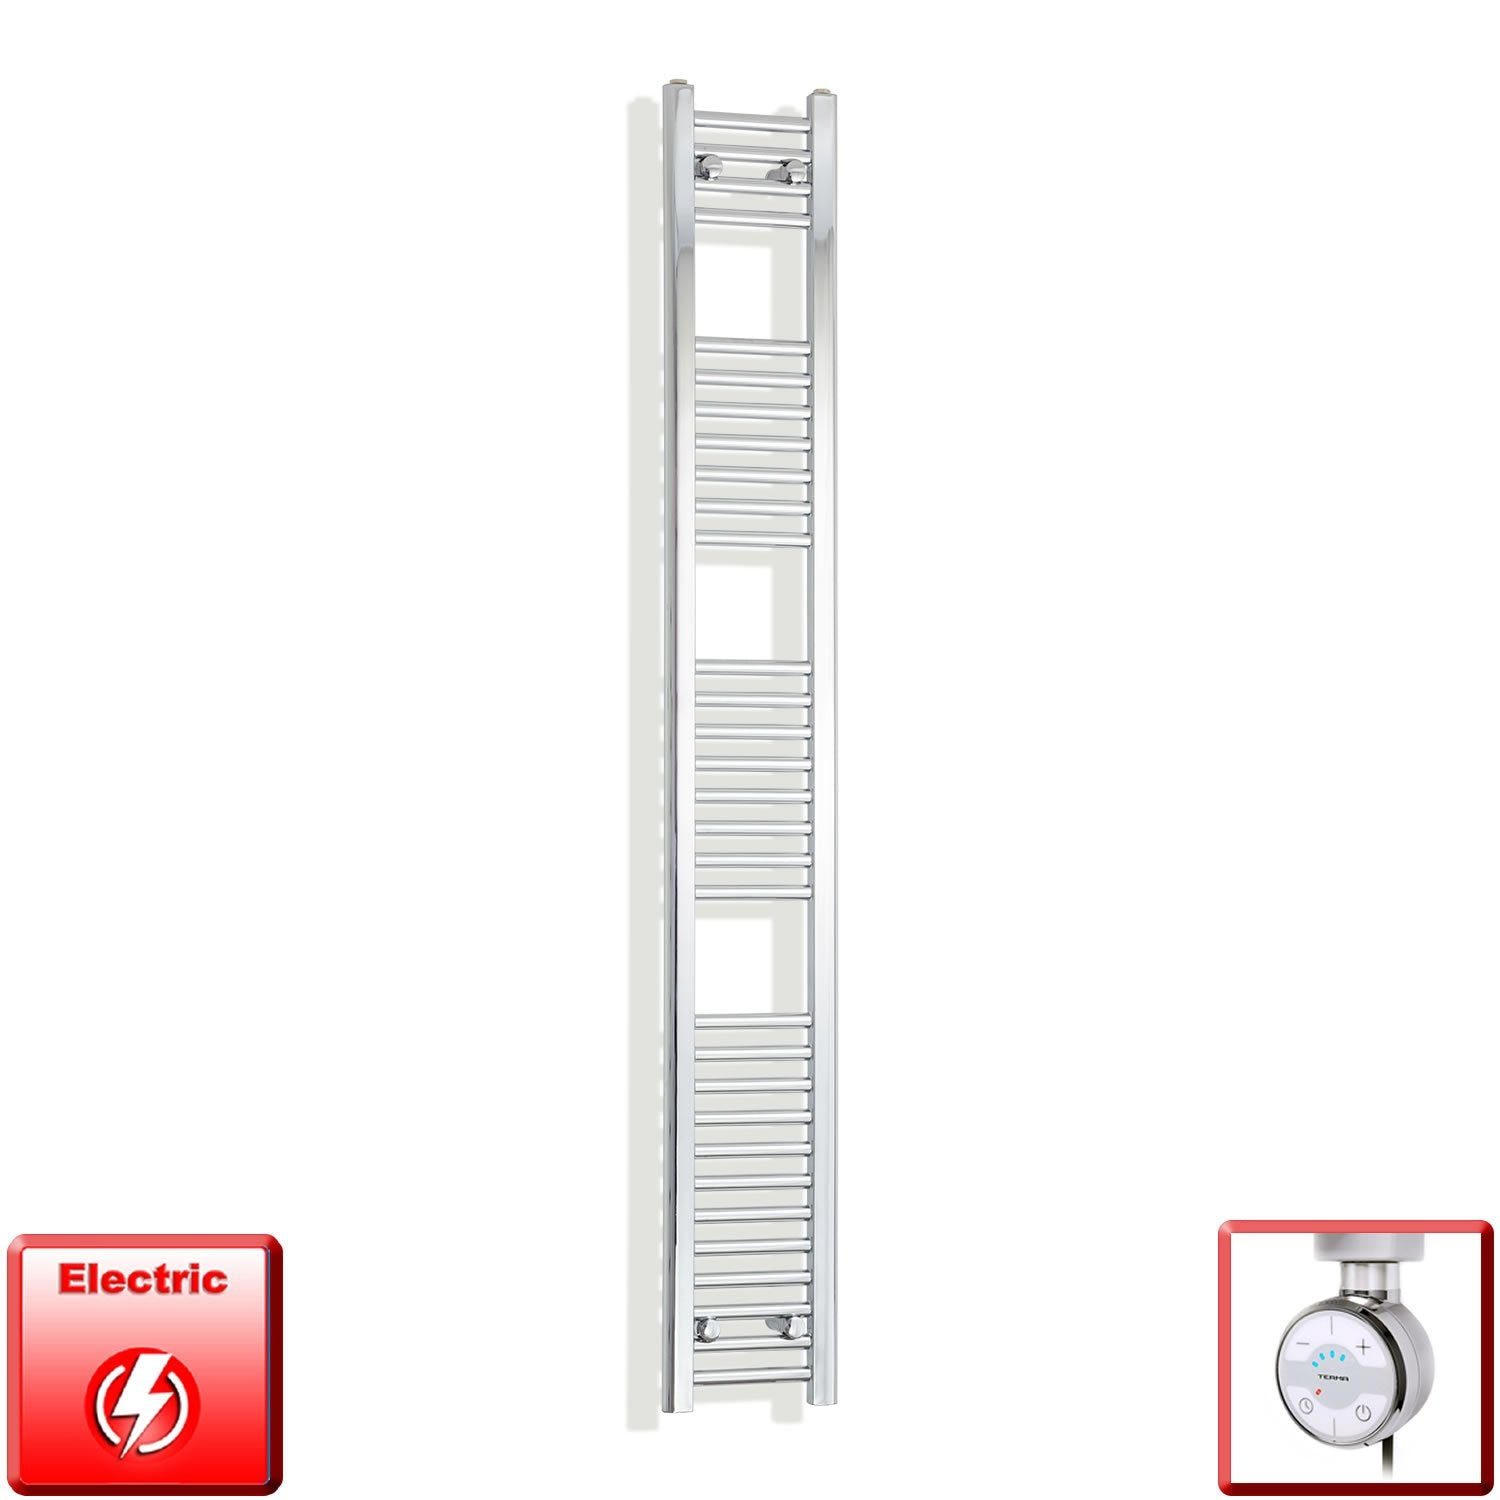 250mm Wide 1800mm High Flat Chrome Pre-Filled Electric Heated Towel Rail Radiator HTR,MOA Thermostatic Element